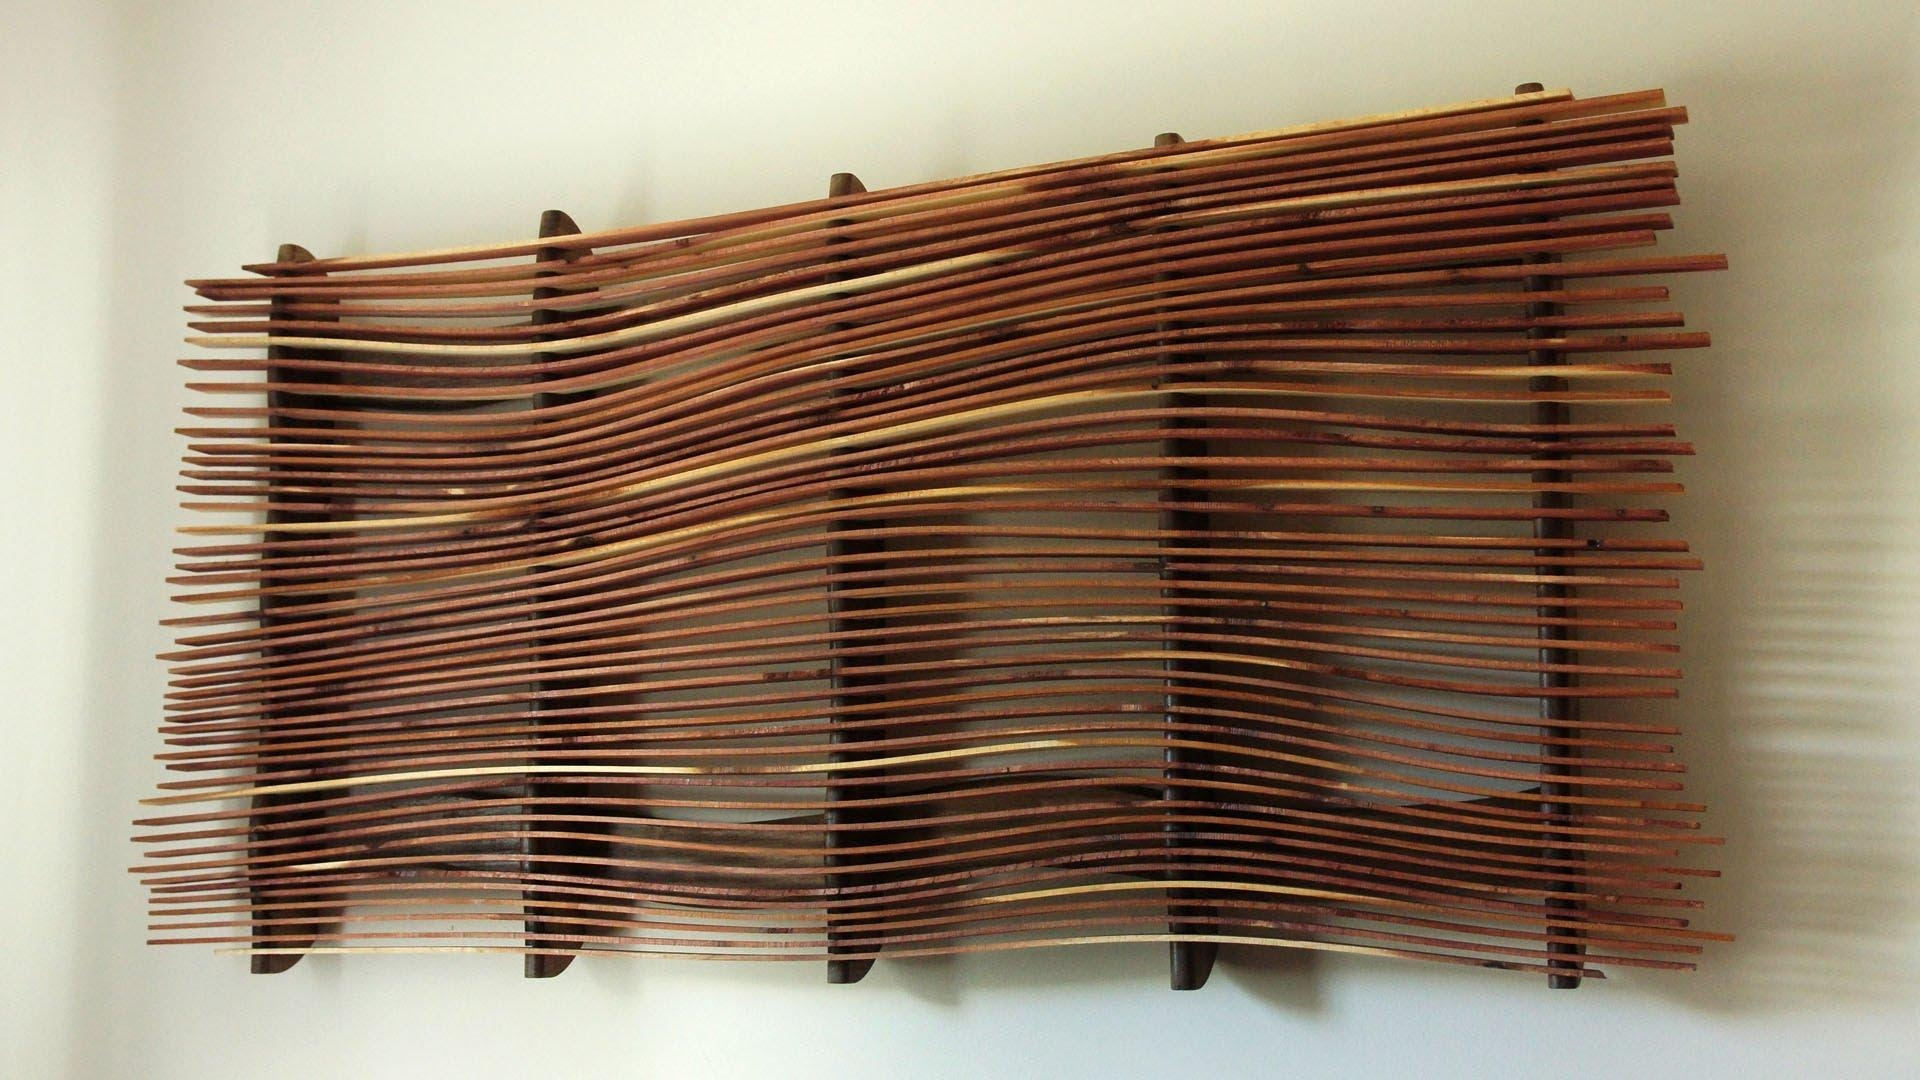 Wall Art From Scrap Wood – Youtube For Wood Panel Wall Art (Image 13 of 20)